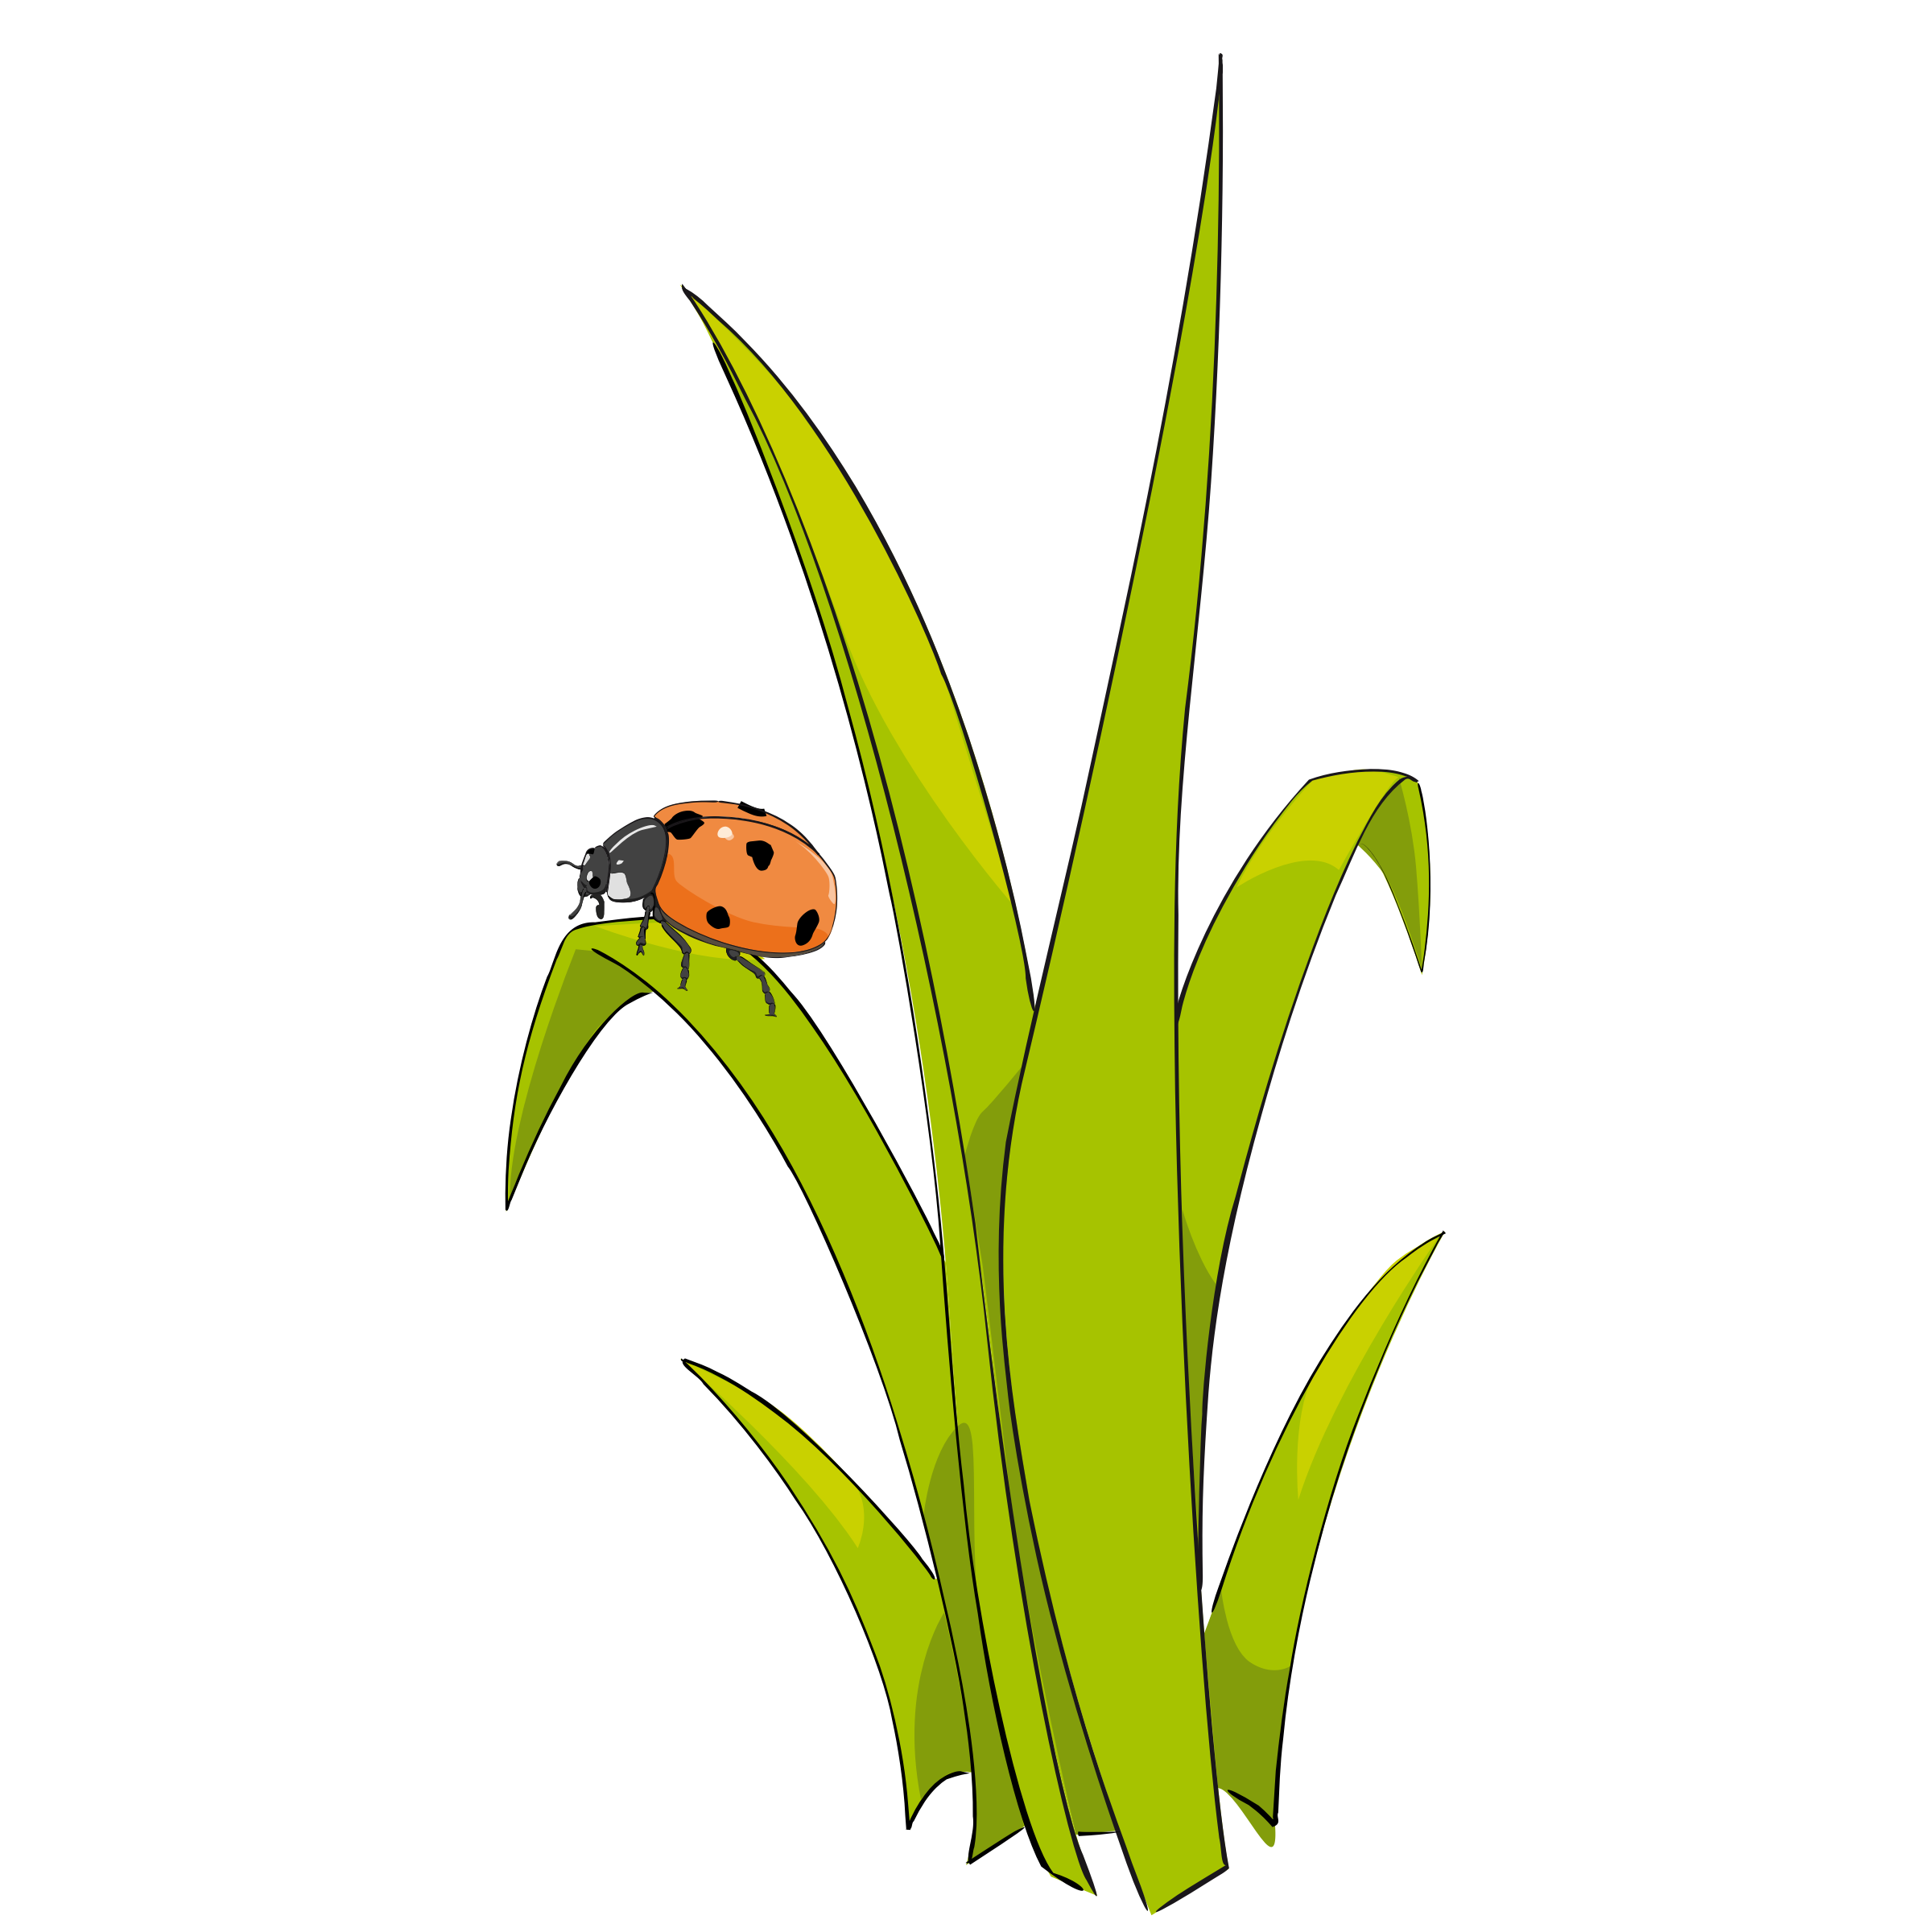 Grass clipart single, Grass single Transparent FREE for.